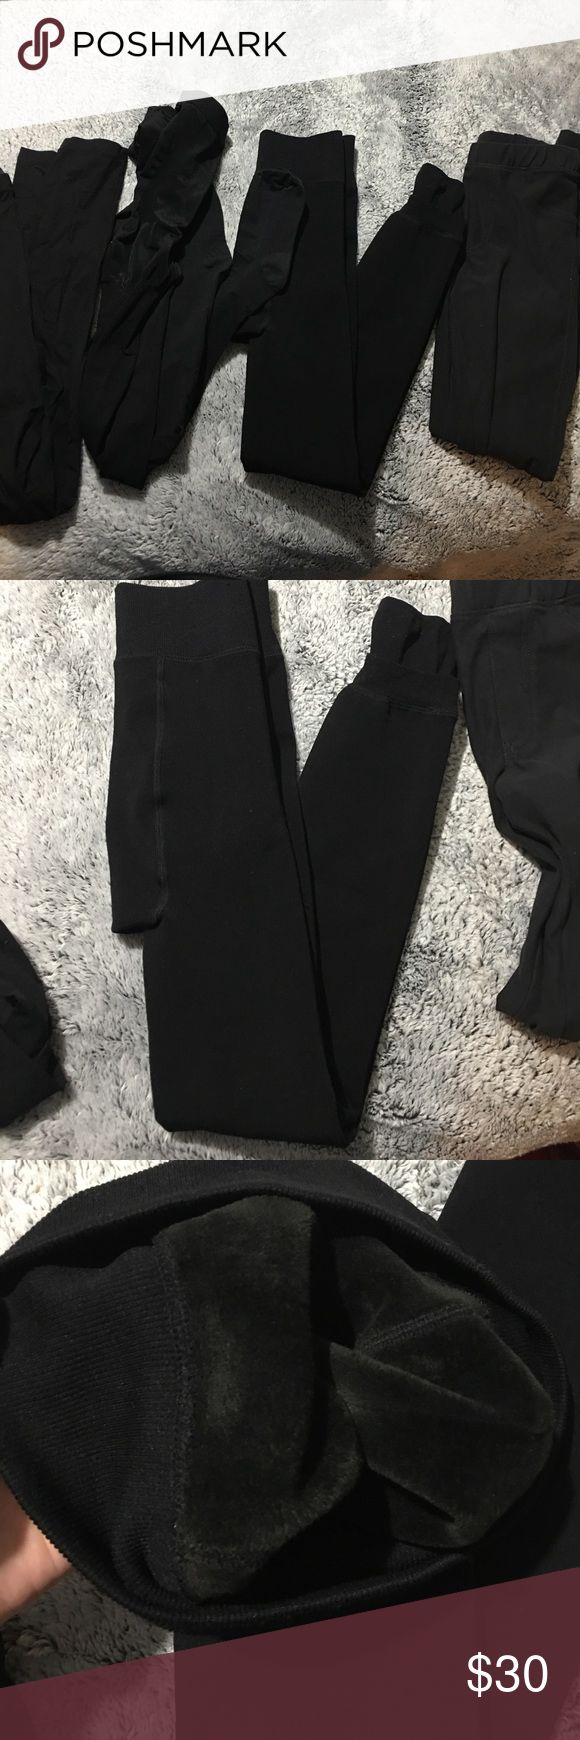 Fleece tights and leggings bundle 1 pair fleece lined footless tights. 1 pair of tights. 1 pair of H&M leggings. 1 pair of H&M leggings with faux pockets. All fit the same and all in good condition H&M Pants Leggings